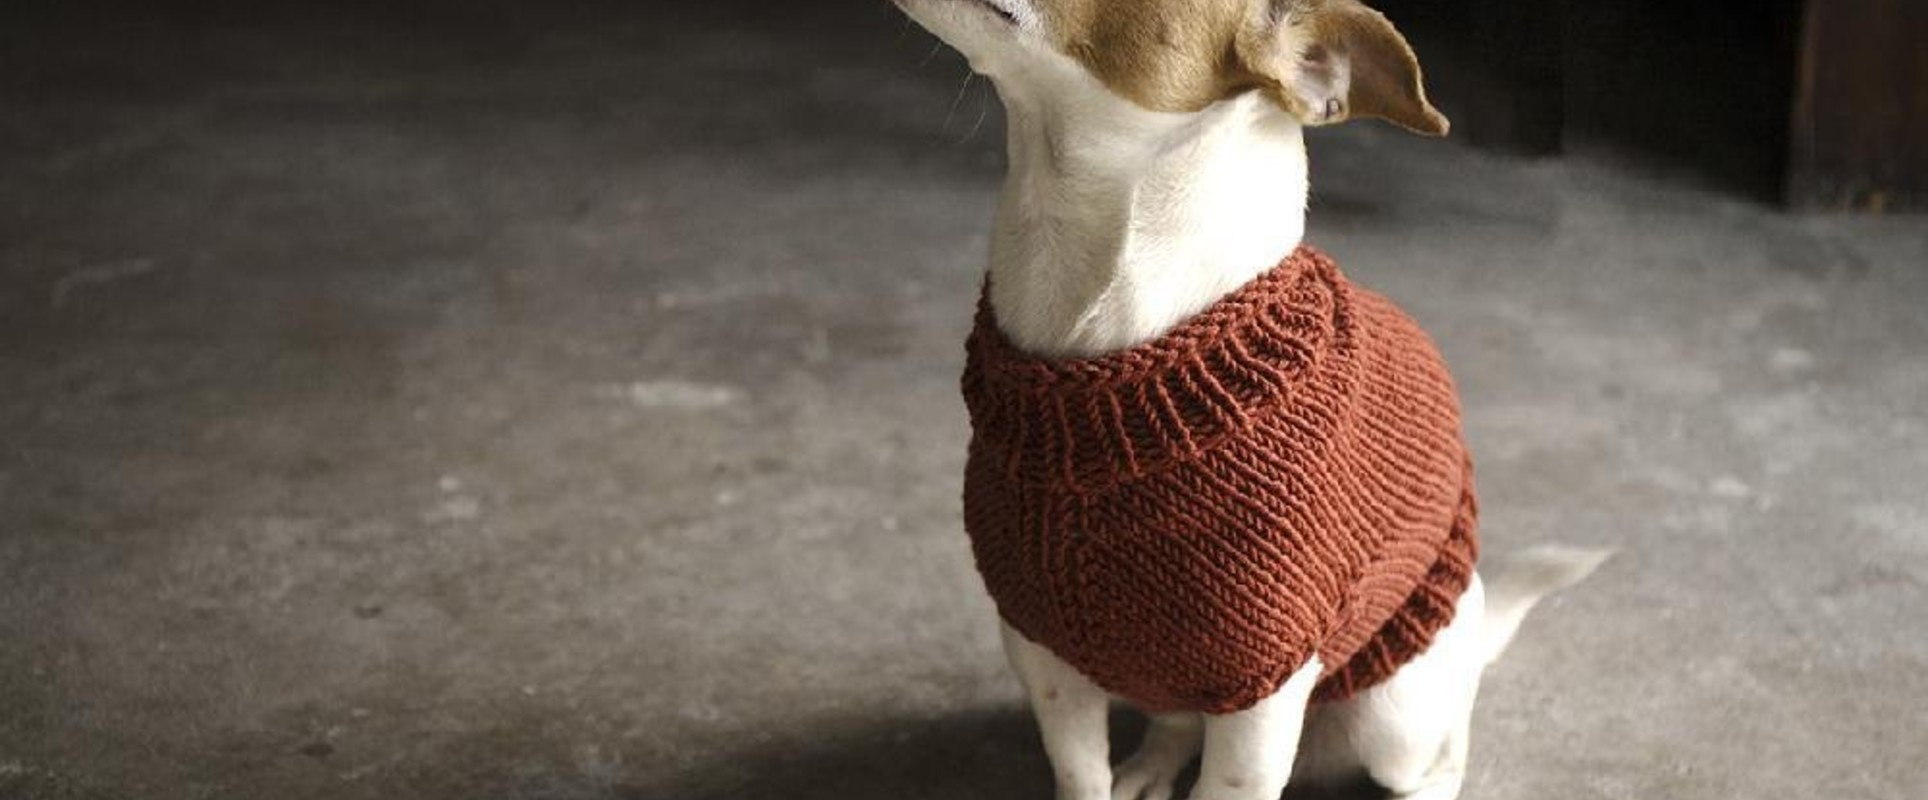 Dog Sweater Knitting Patterns Top 5 Free Dog Sweater Knitting Patterns Lovecrafts